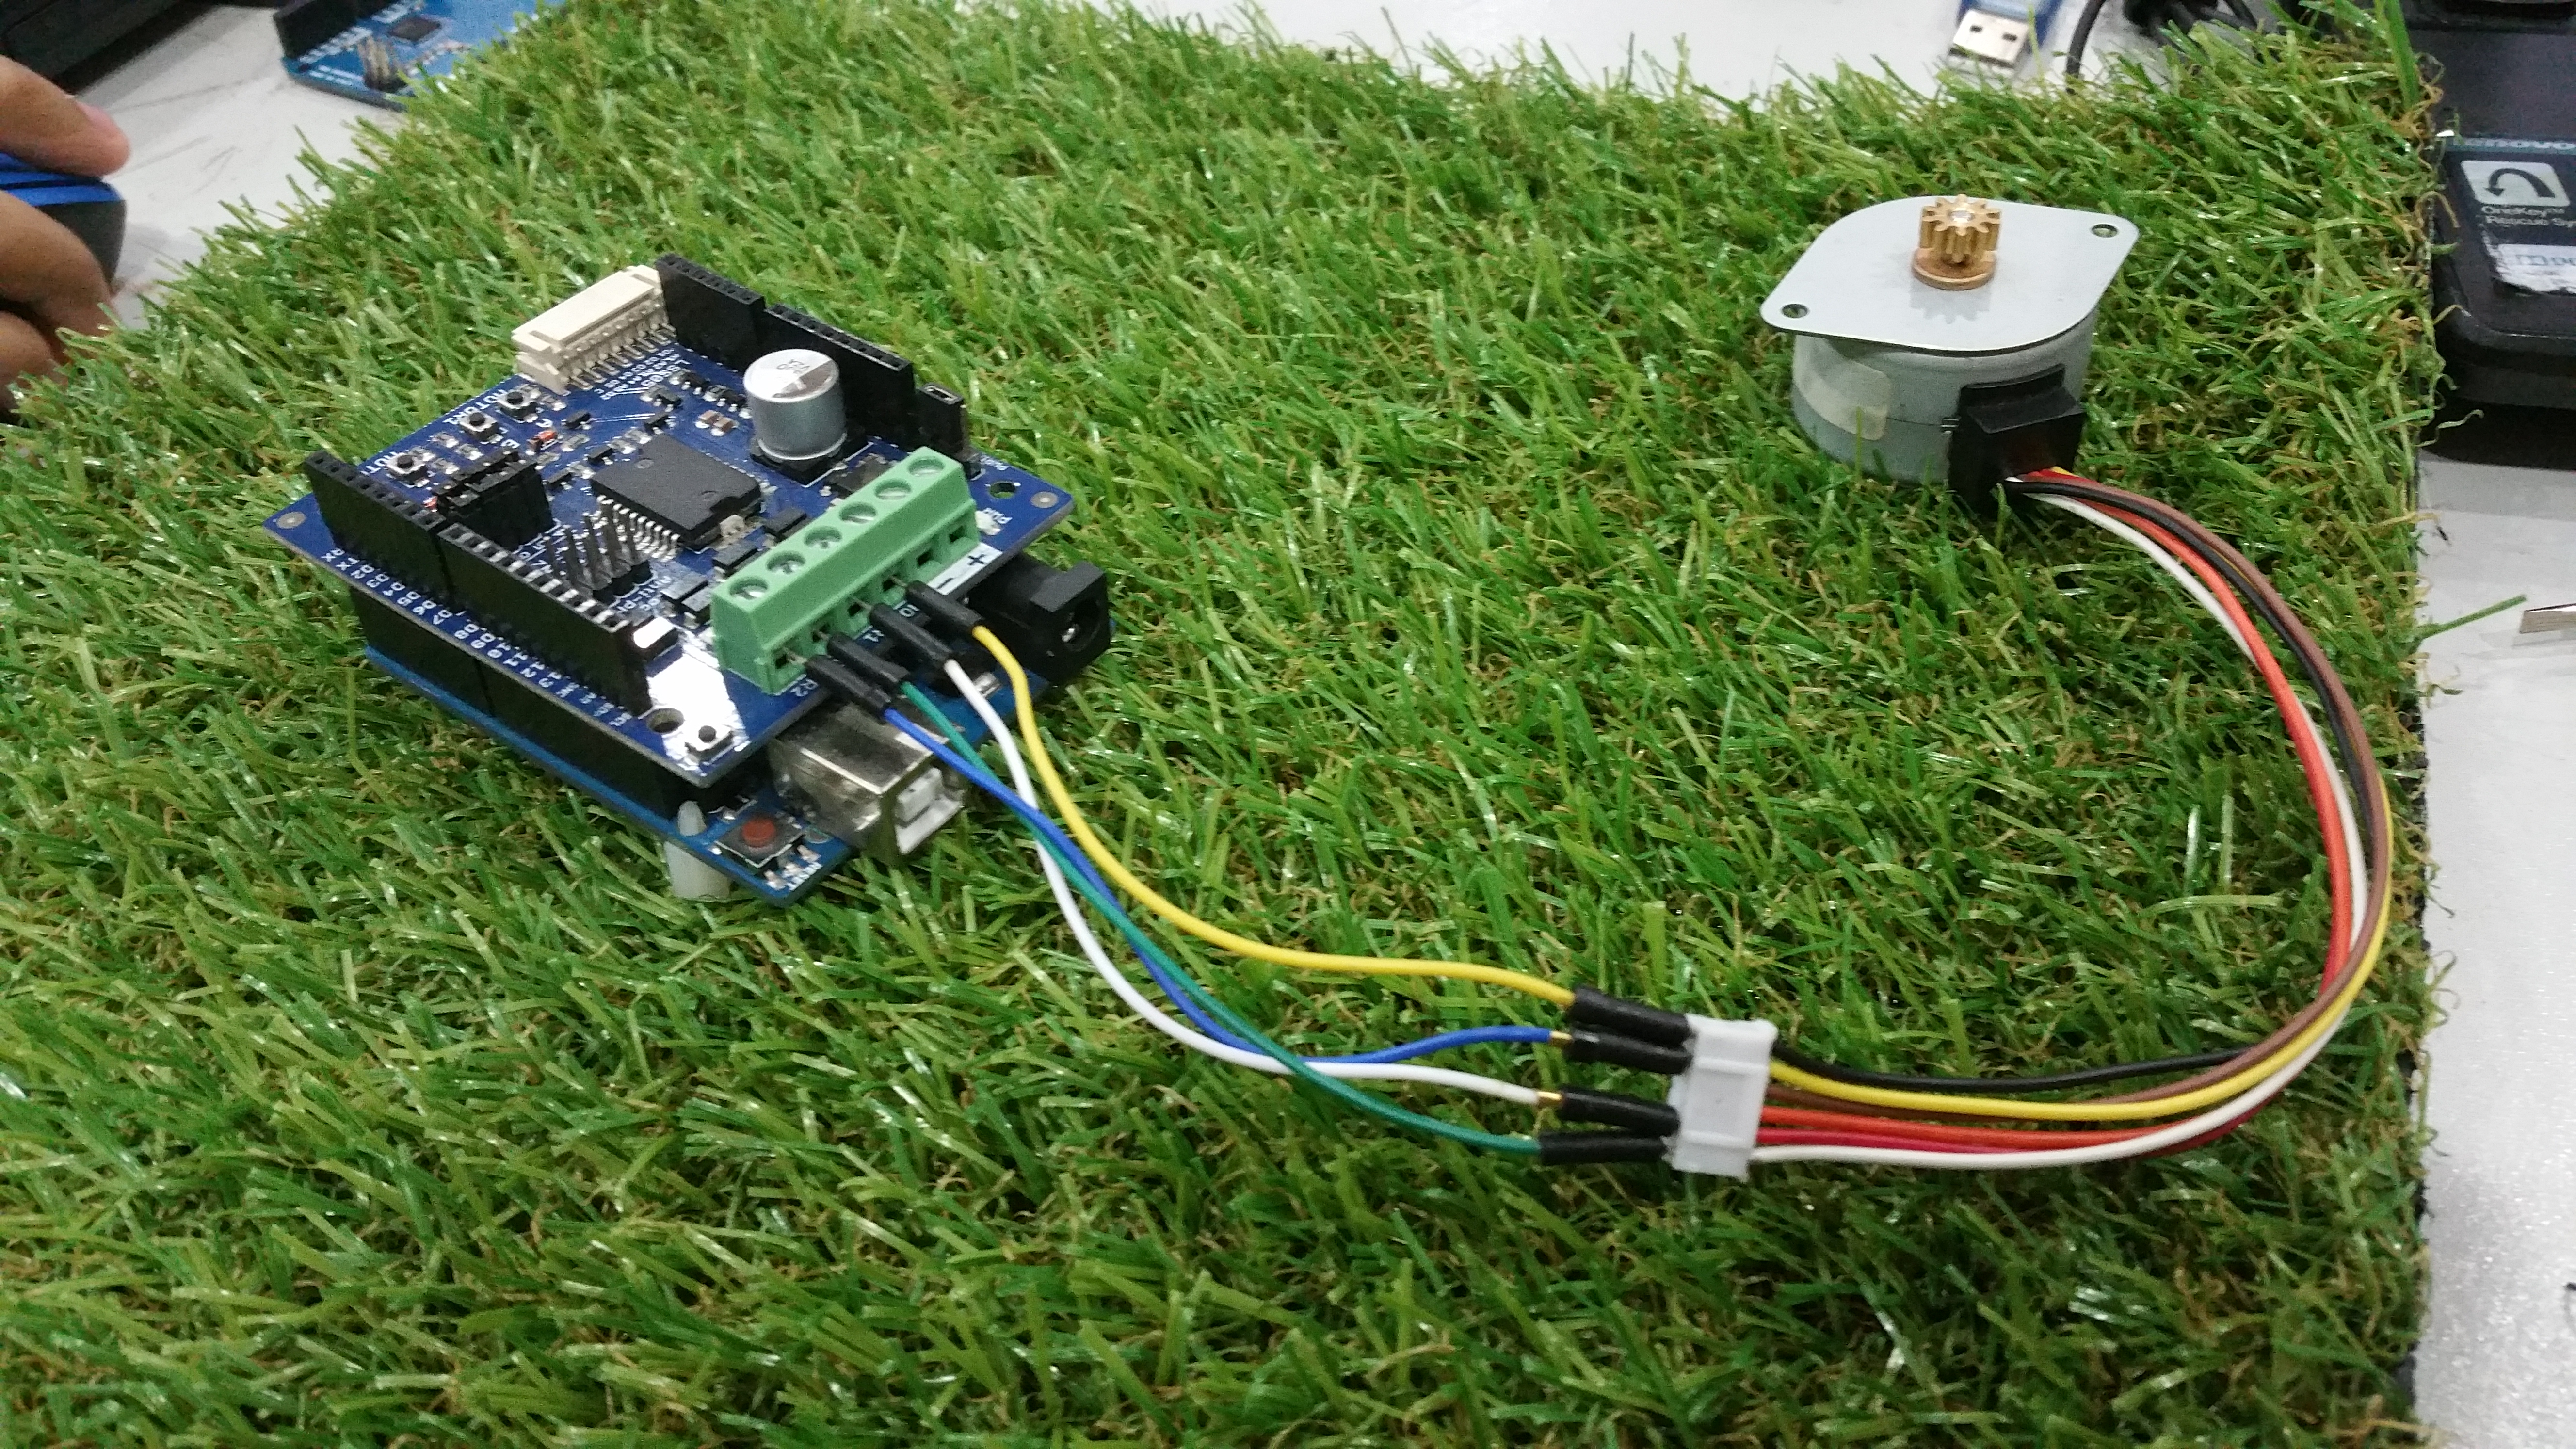 Arduino Stepper Motor 2amp Driver Shield Tutorial By Cytron Wiring Diagram 6 Pin Plug 4then In The Usb B Type Cable To Uno